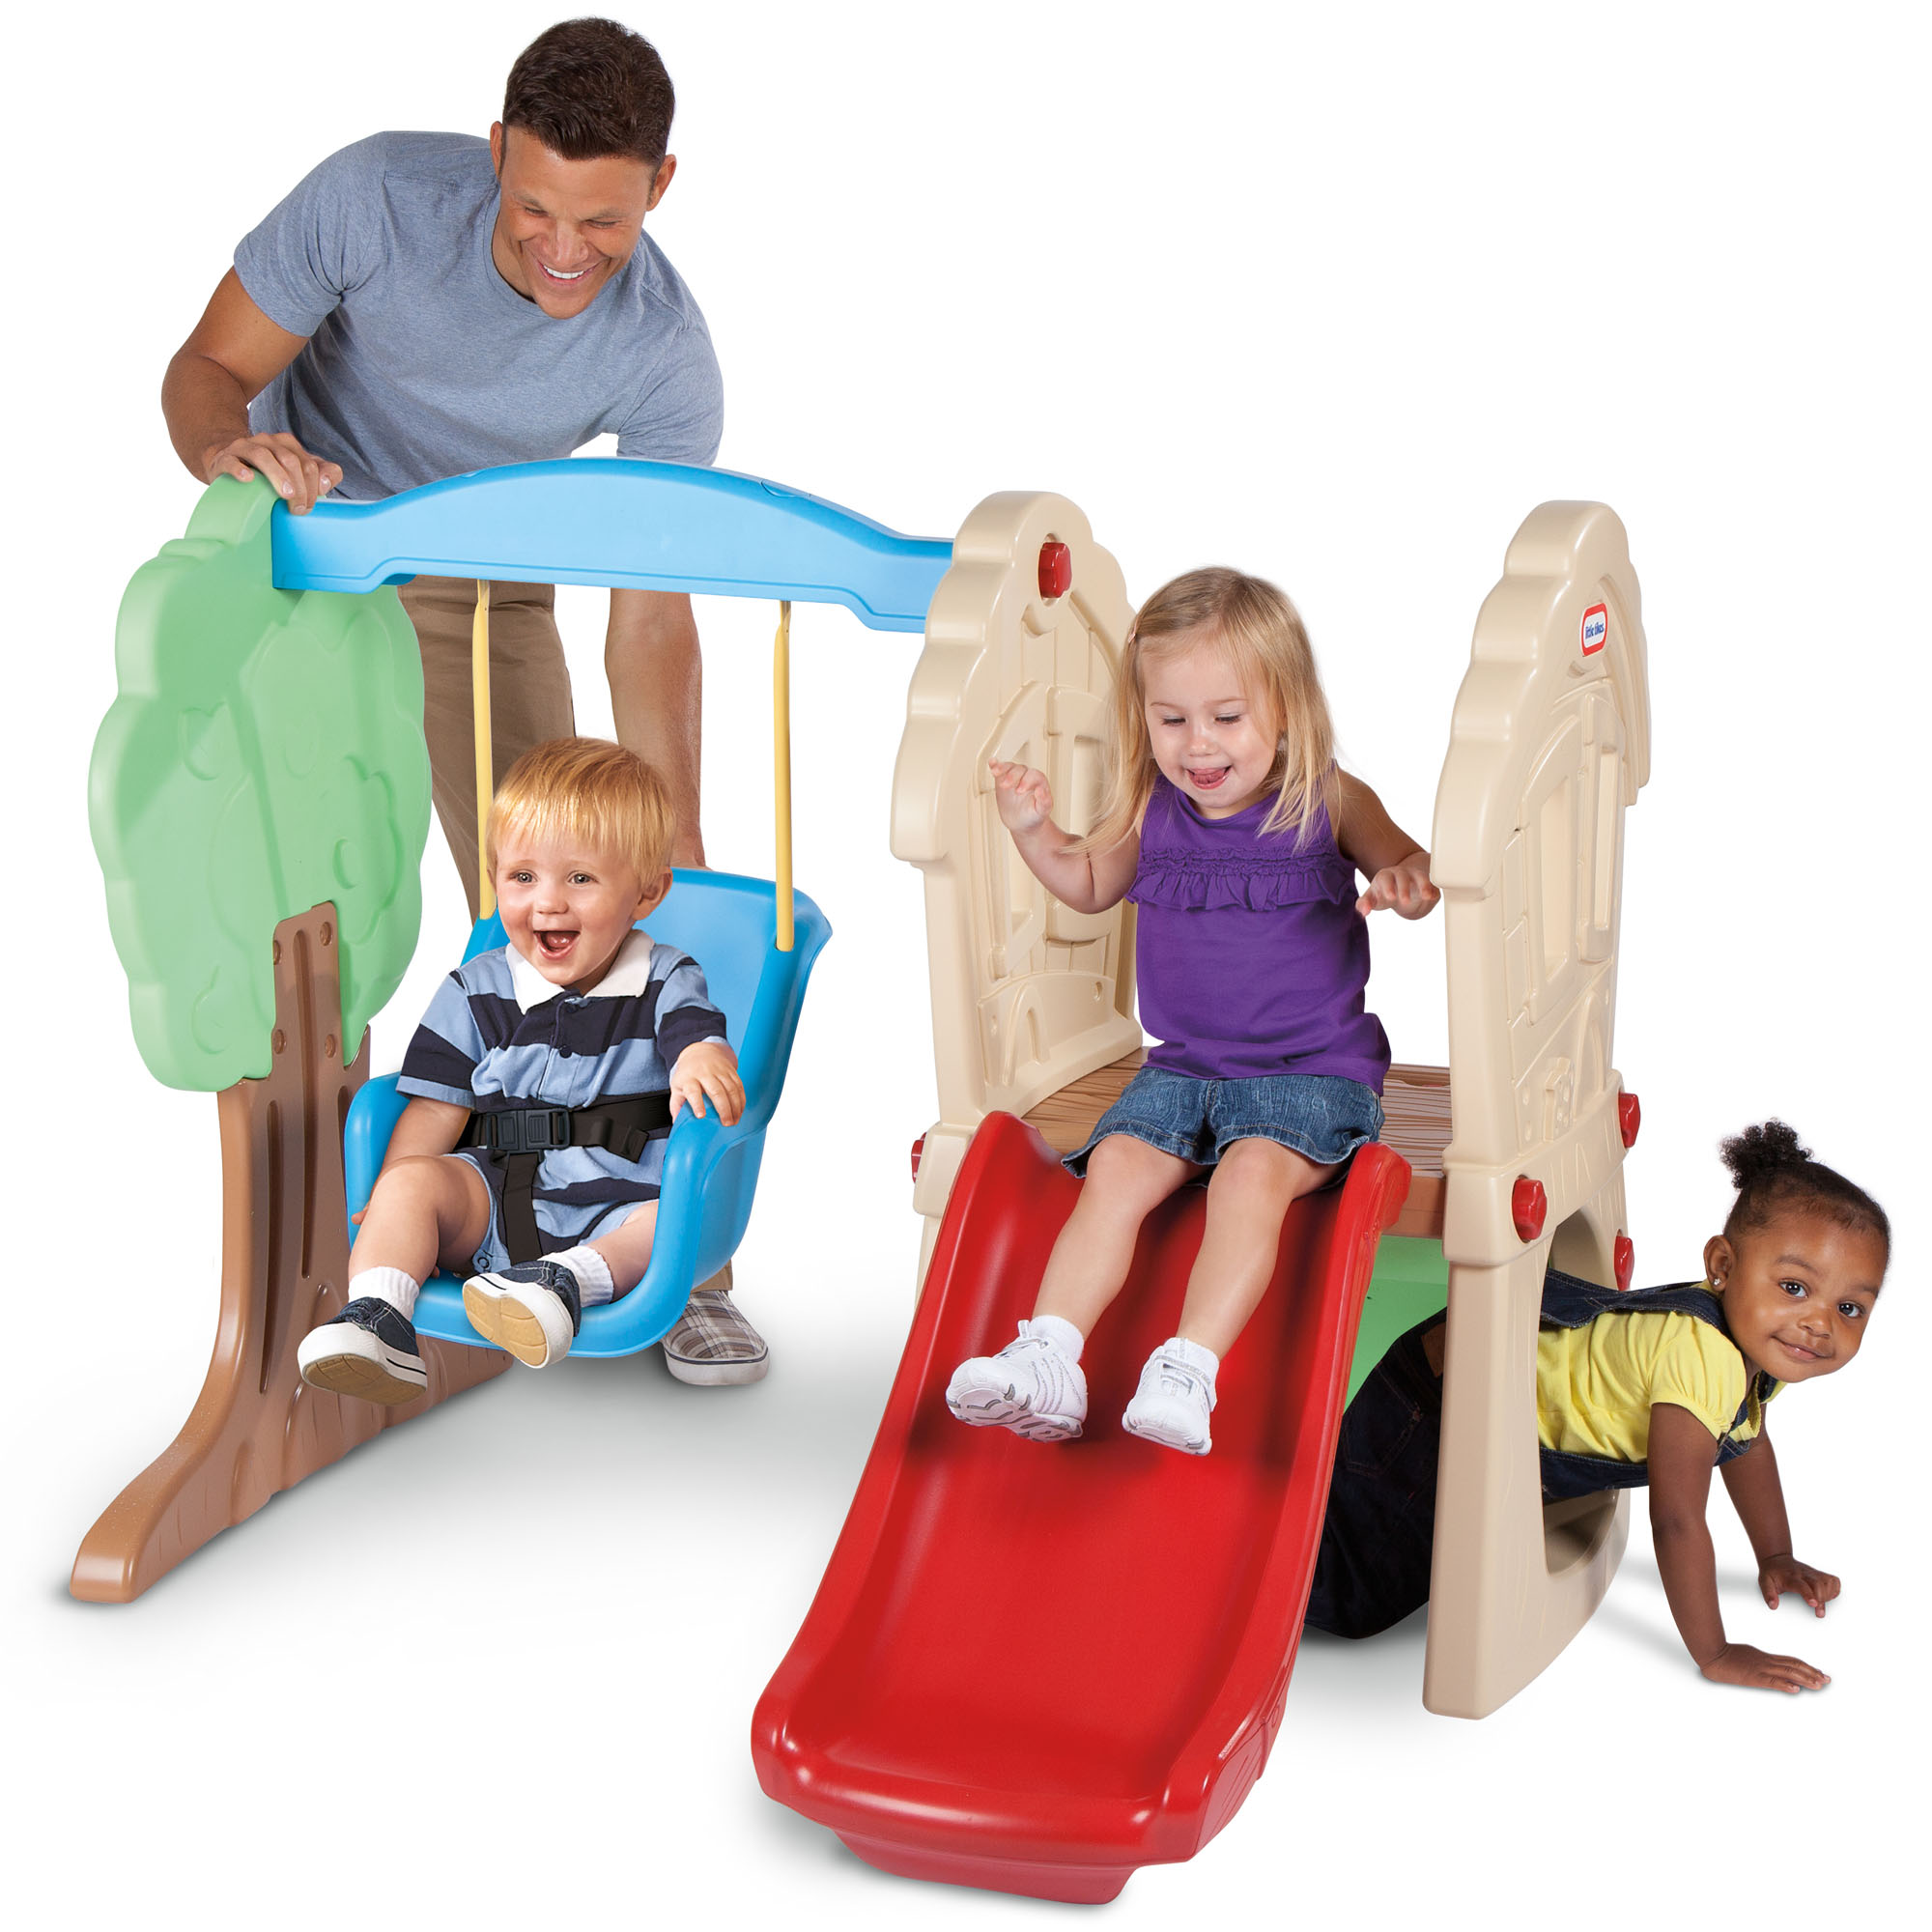 Little Tikes Hide & Seek Climber and Swing - Brown/Tan